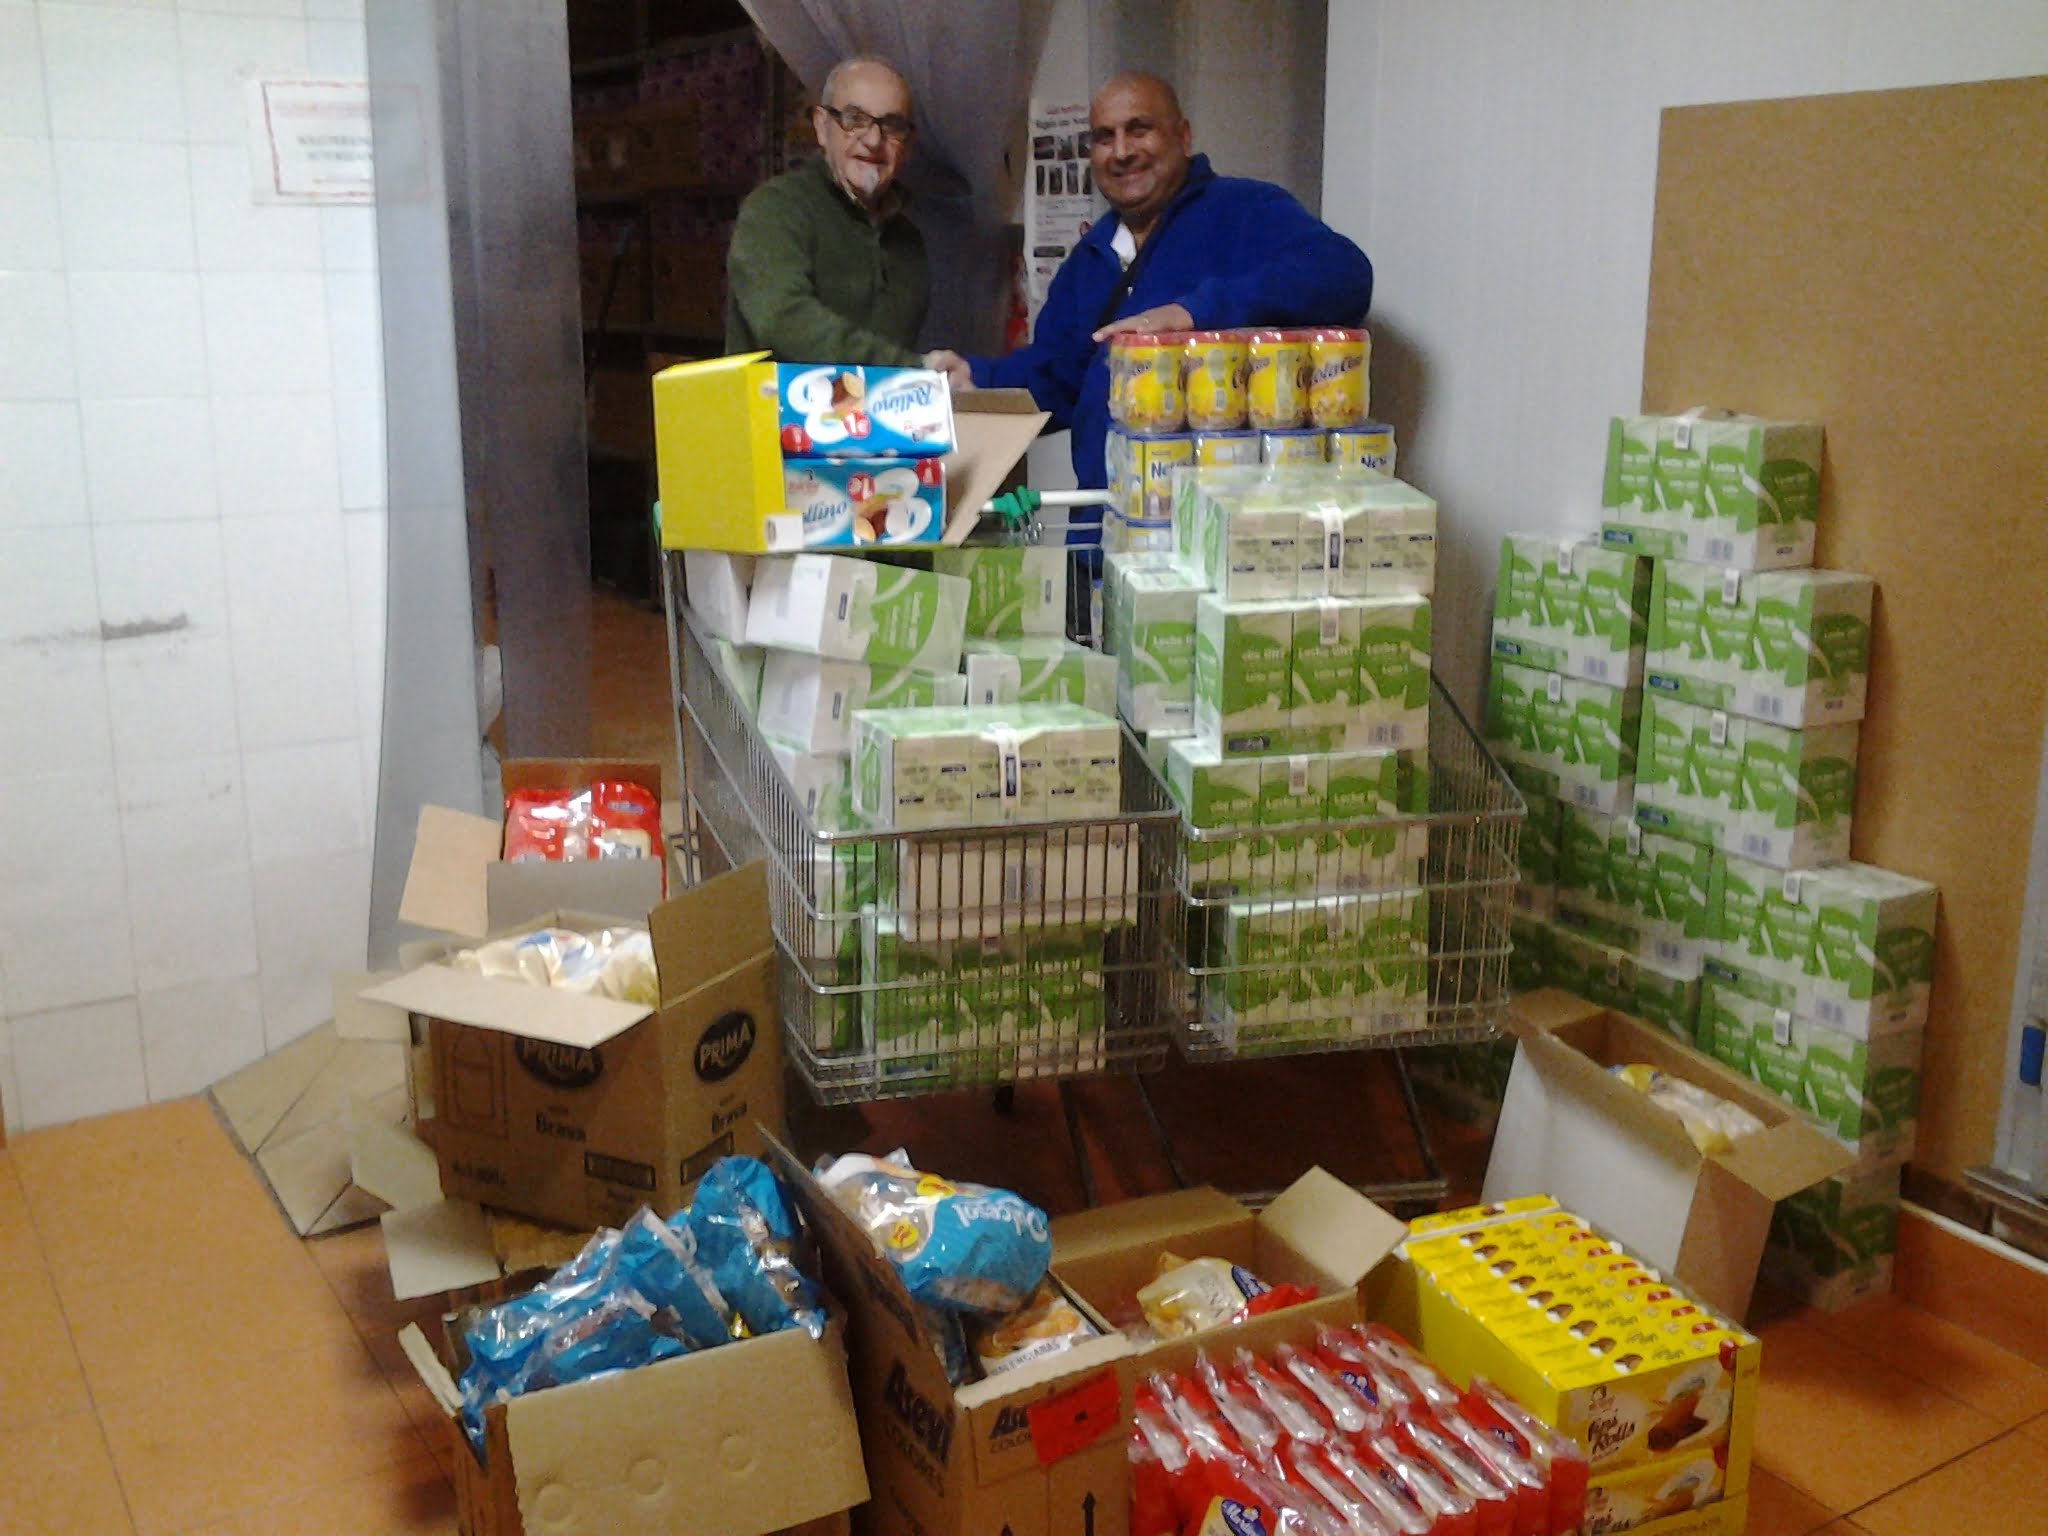 Local Freemason's from Caledonia Lodge donate to Food Bank